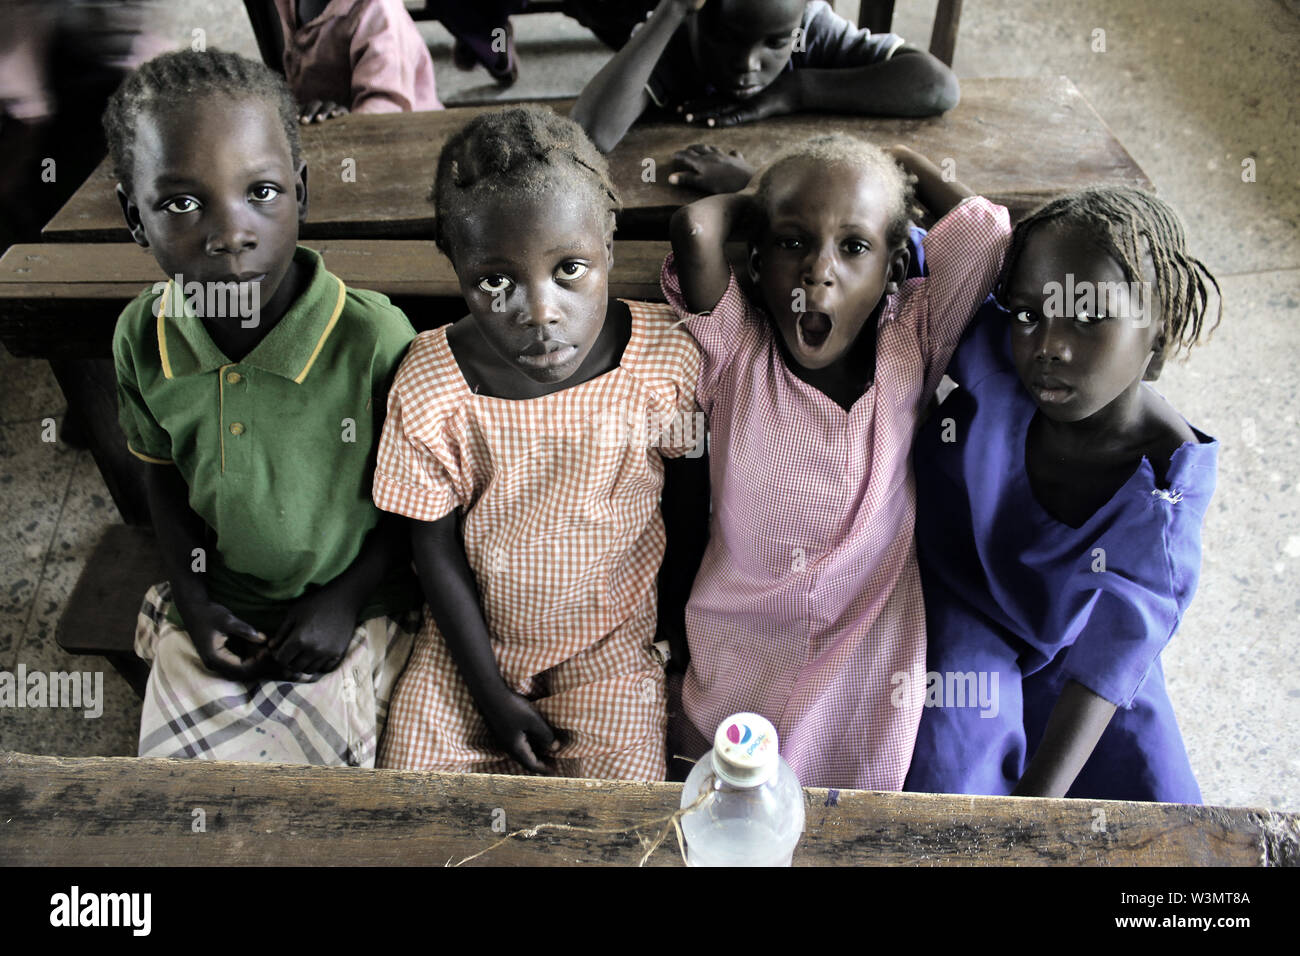 Parents of many displaced children complain of their inabilities to afford school uniforms and educational materials for their children in public school. Therefore, many of the few displaced children who attend school are encouraged to attend schools in any kind of clothes. A water bottle is the only item brought to class by these four displaced children. - Stock Image